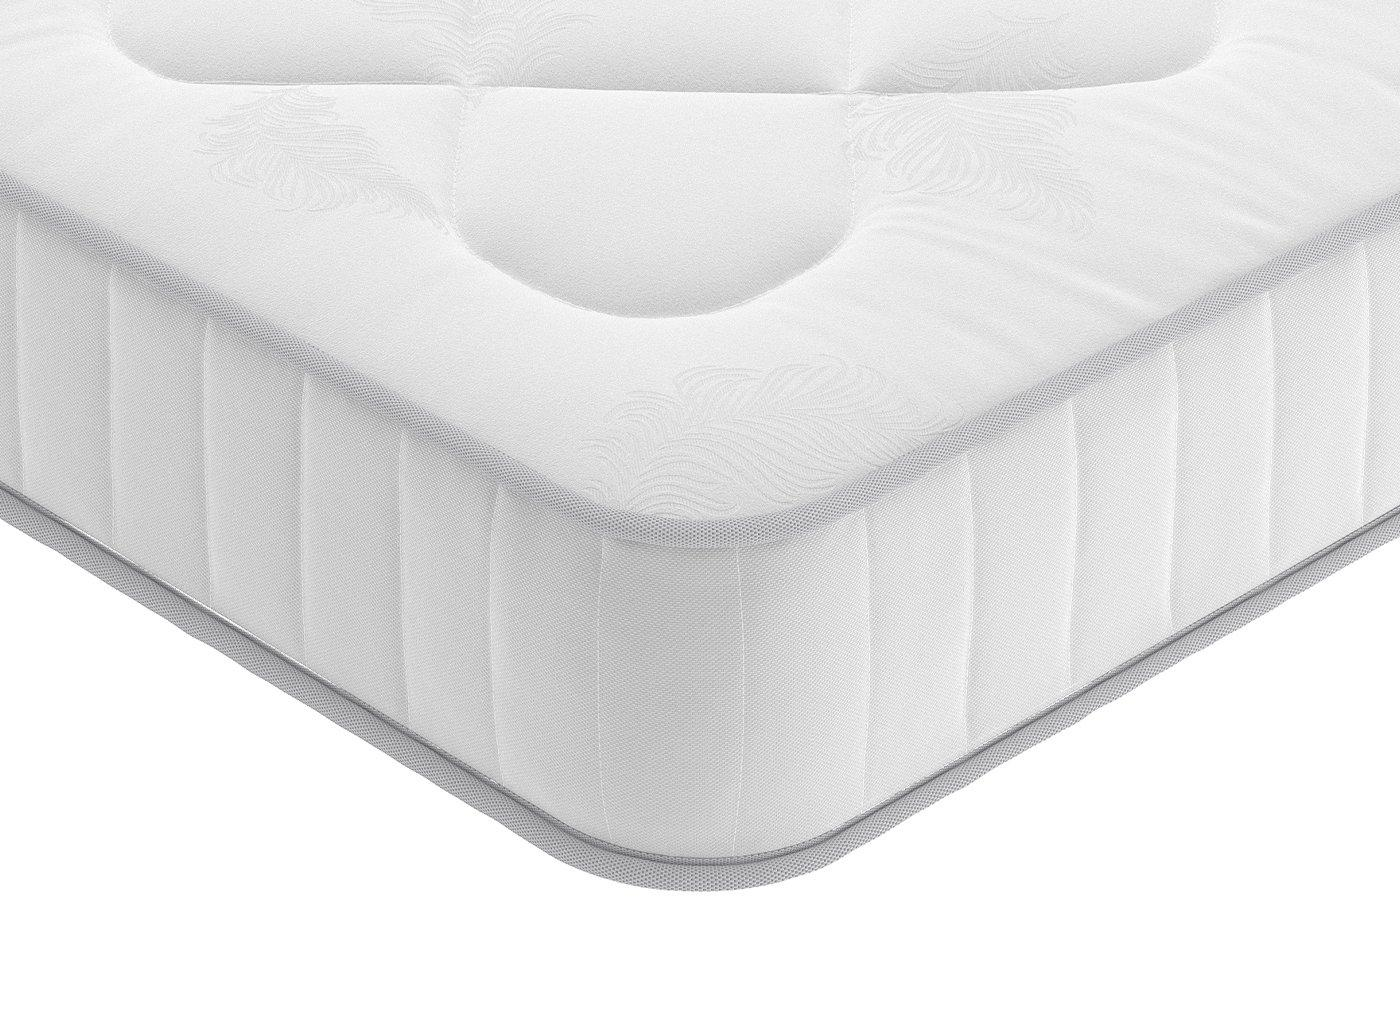 Harris Traditional Spring Mattress - Firm